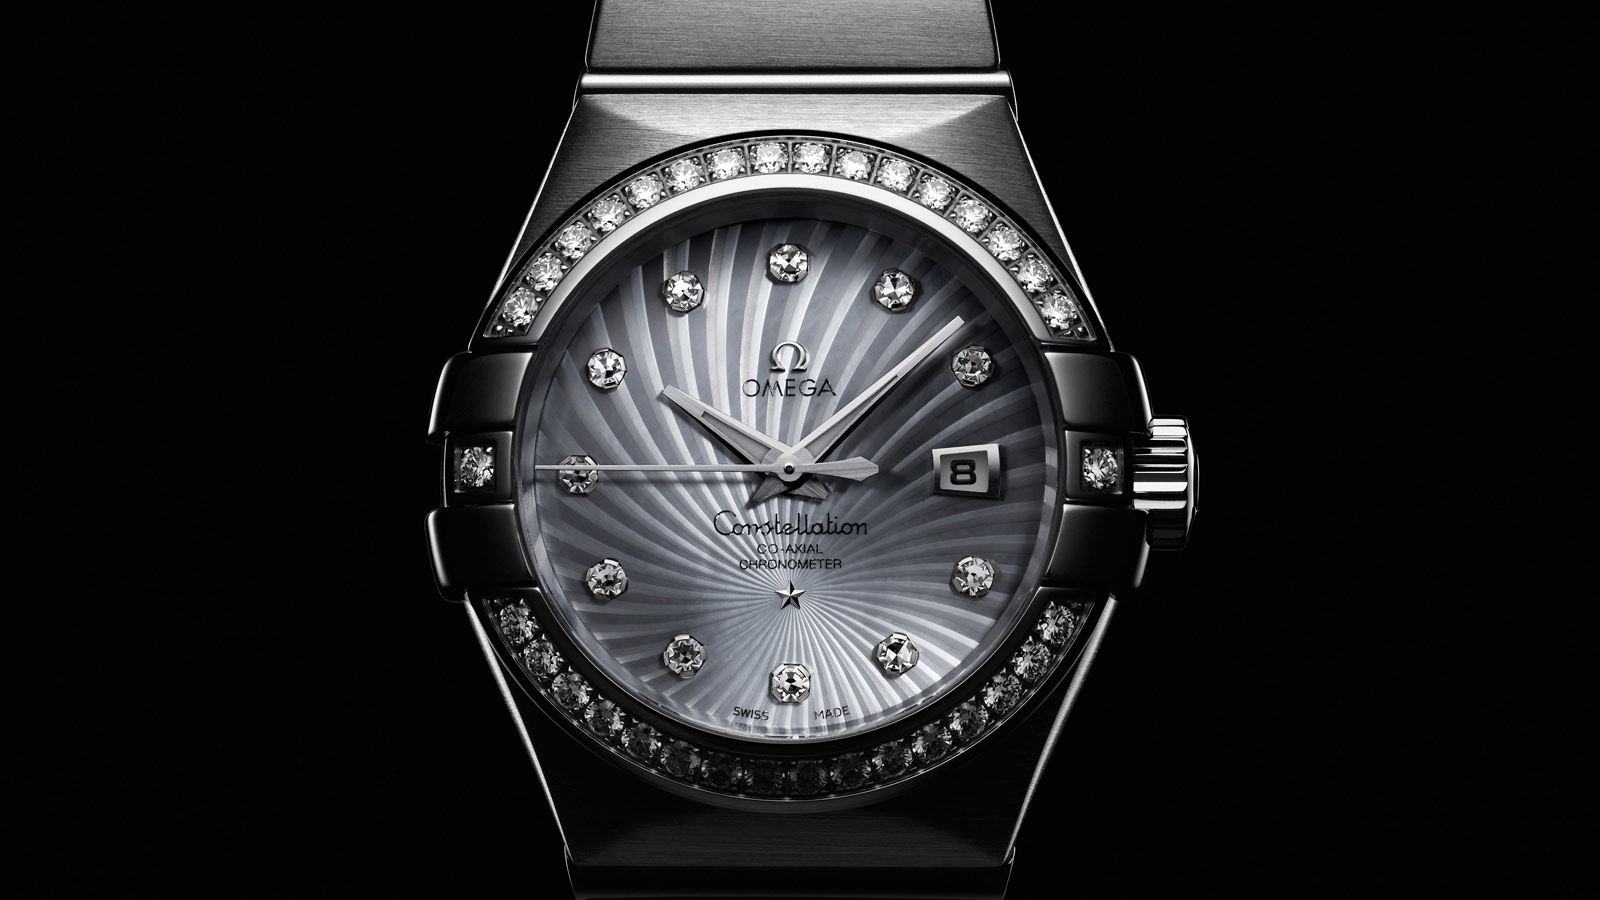 Constellation Constellation Constellation Omega Co‑Axial 31mm - 123.55.31.20.55.003 - View 1